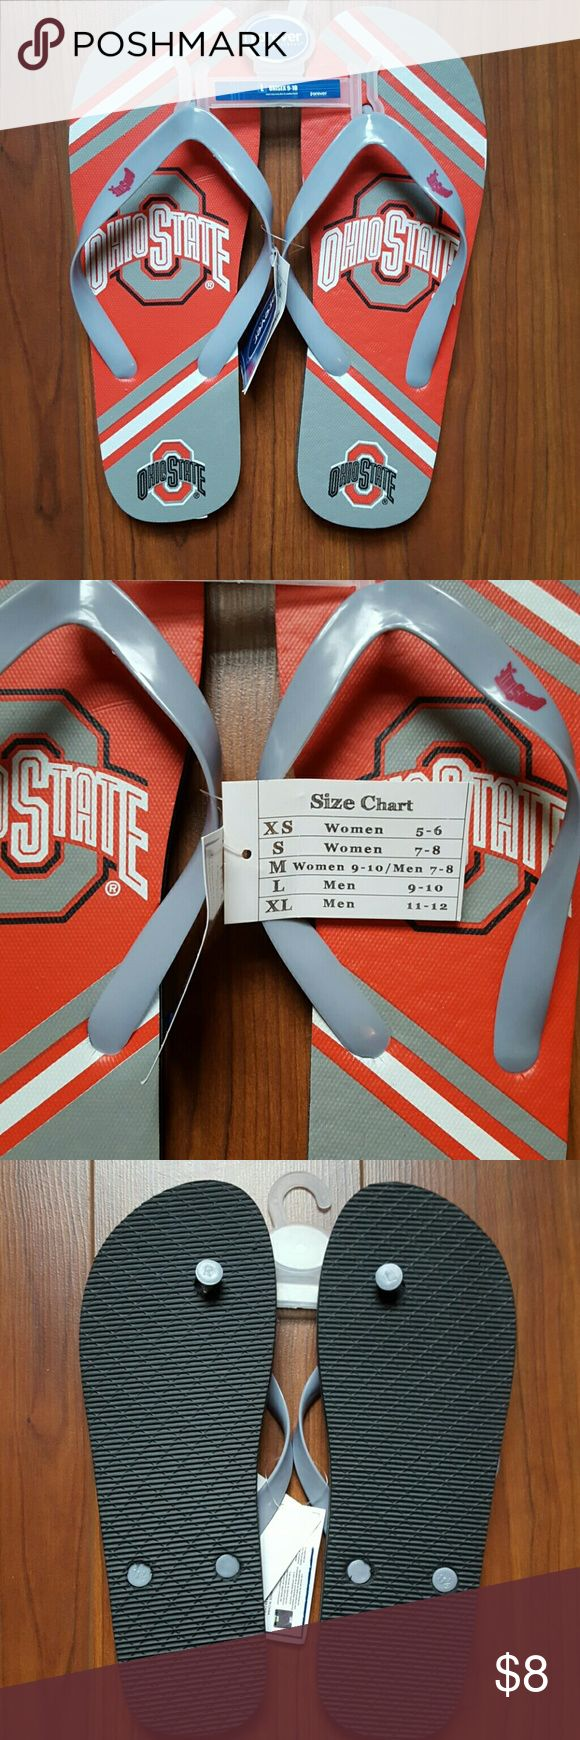 OSU flip flops. Unisex Never worn. OSU flip flops. Too big for me. Unisex. Size chart shown. Men's size 9-10  Comment with any questions! No trades. Open to offers. Shoes Sandals & Flip-Flops